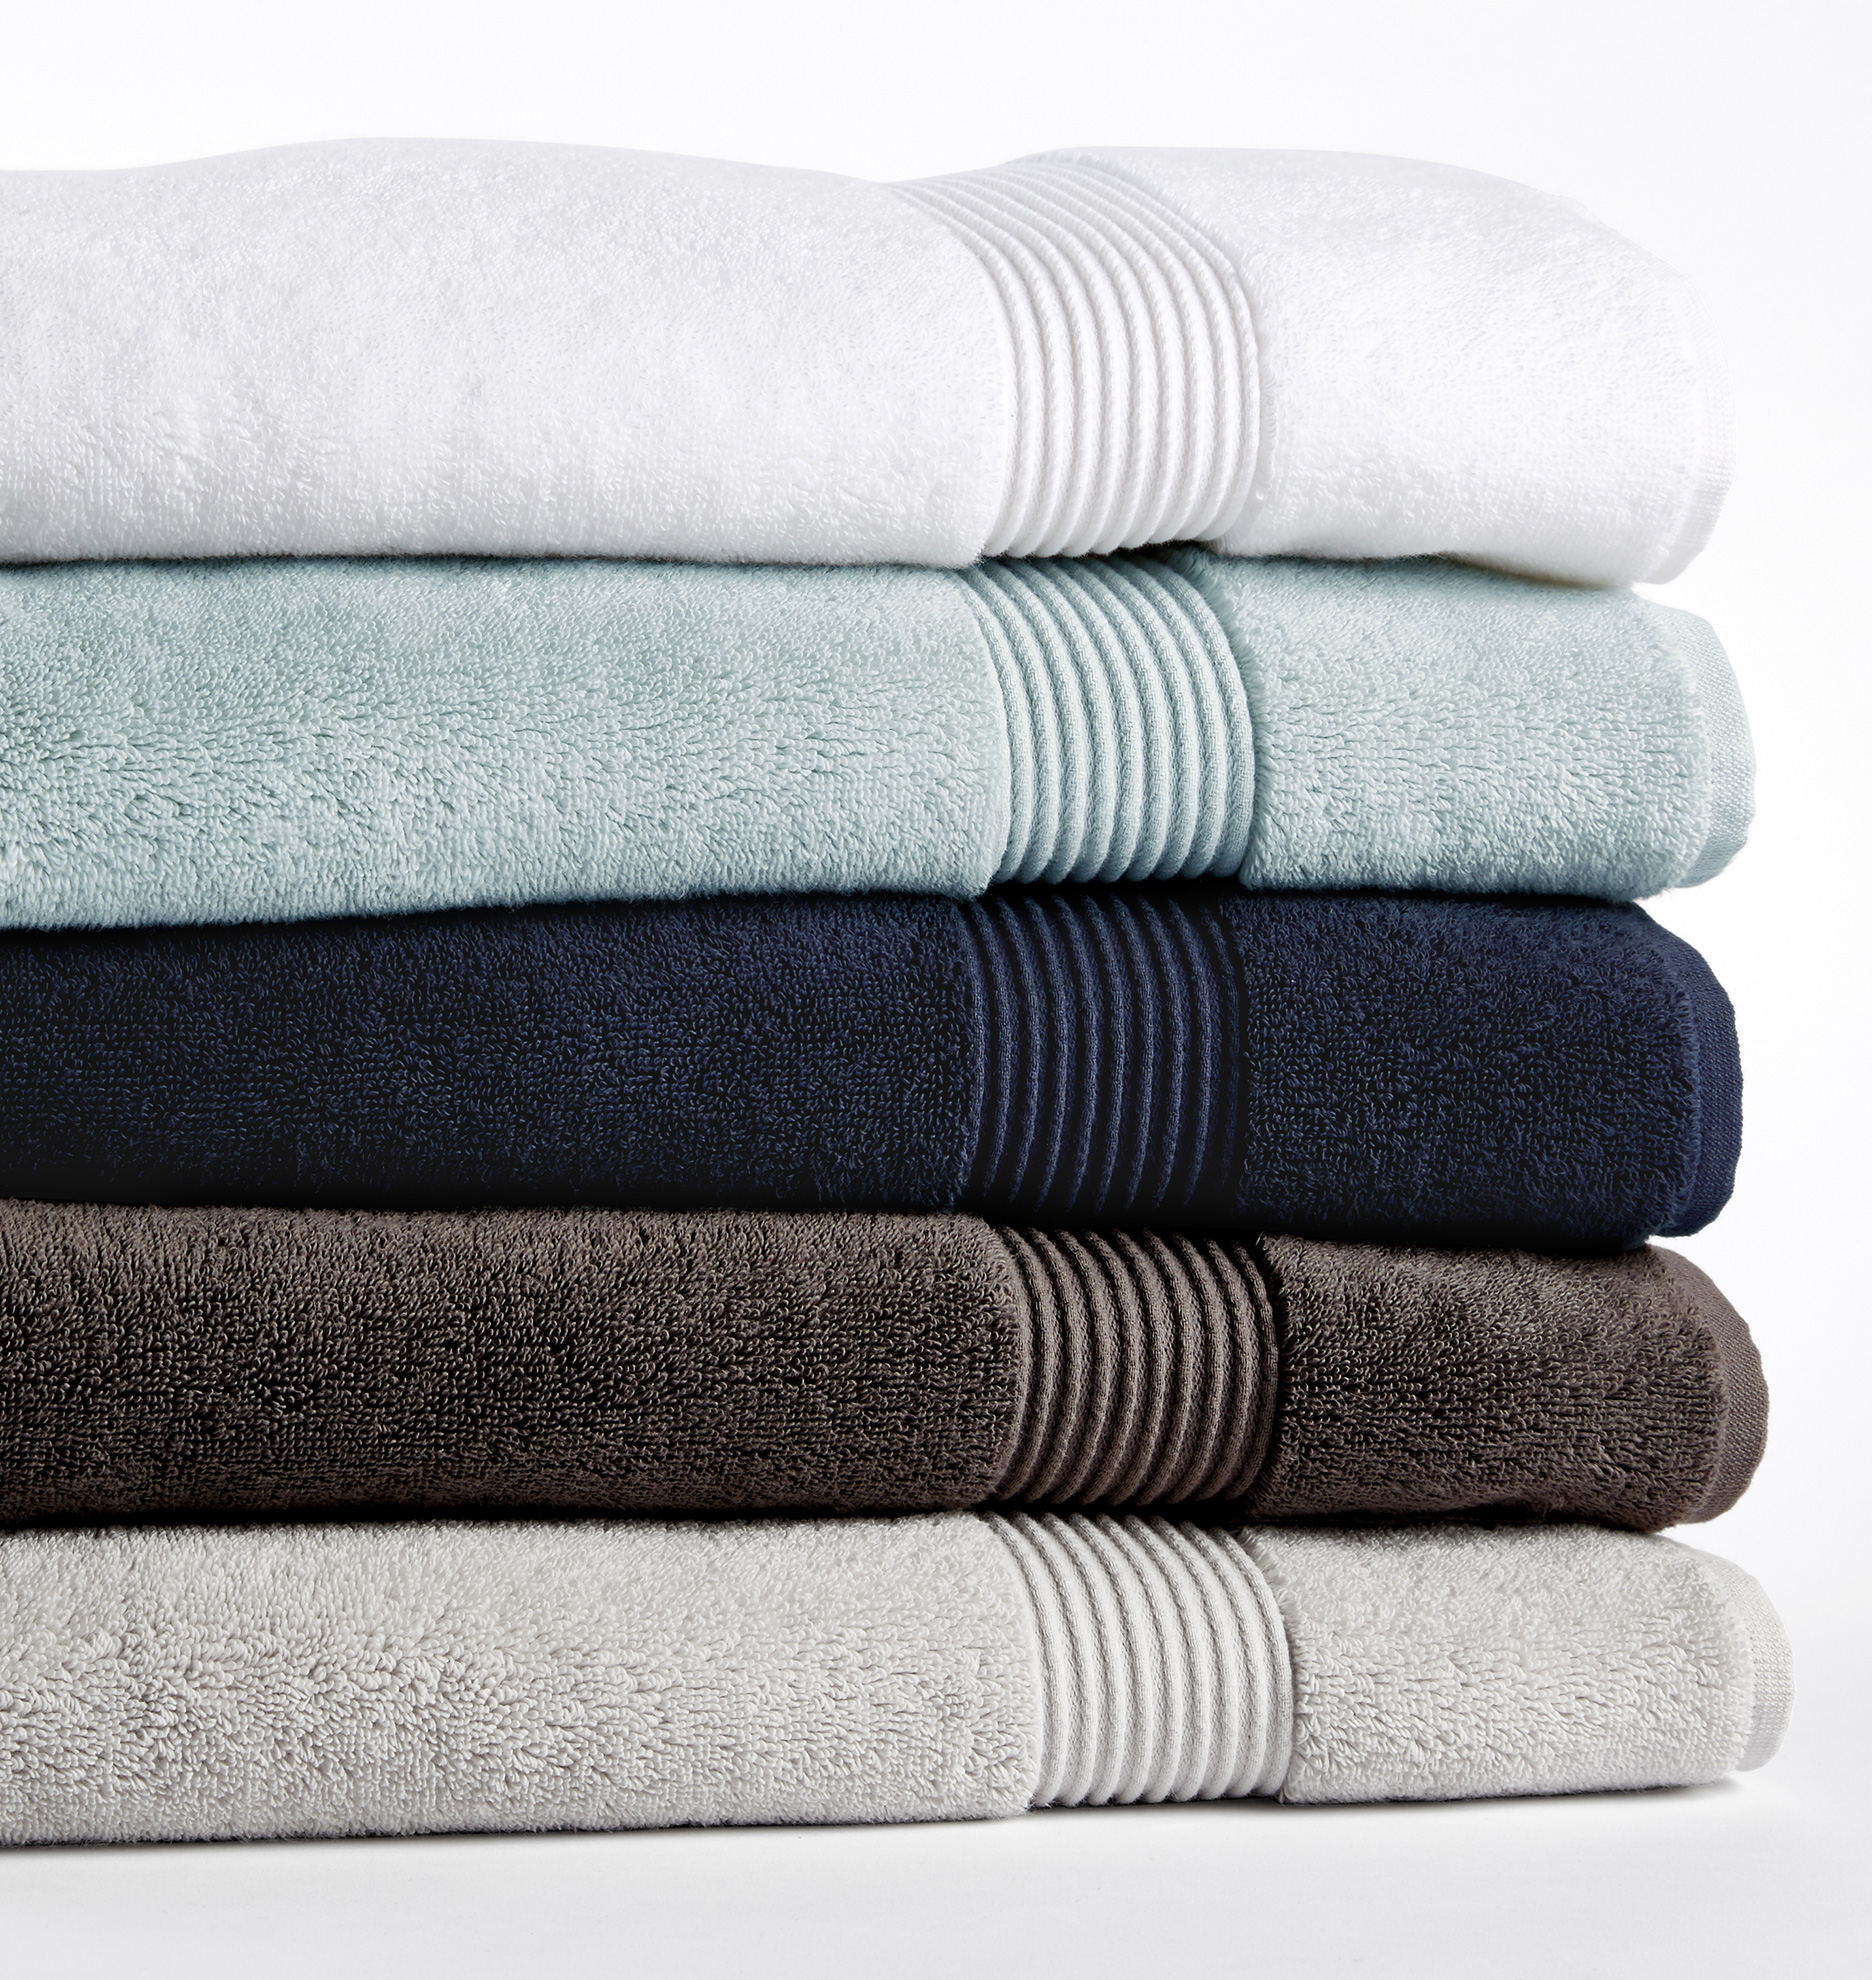 microcotton bath towels